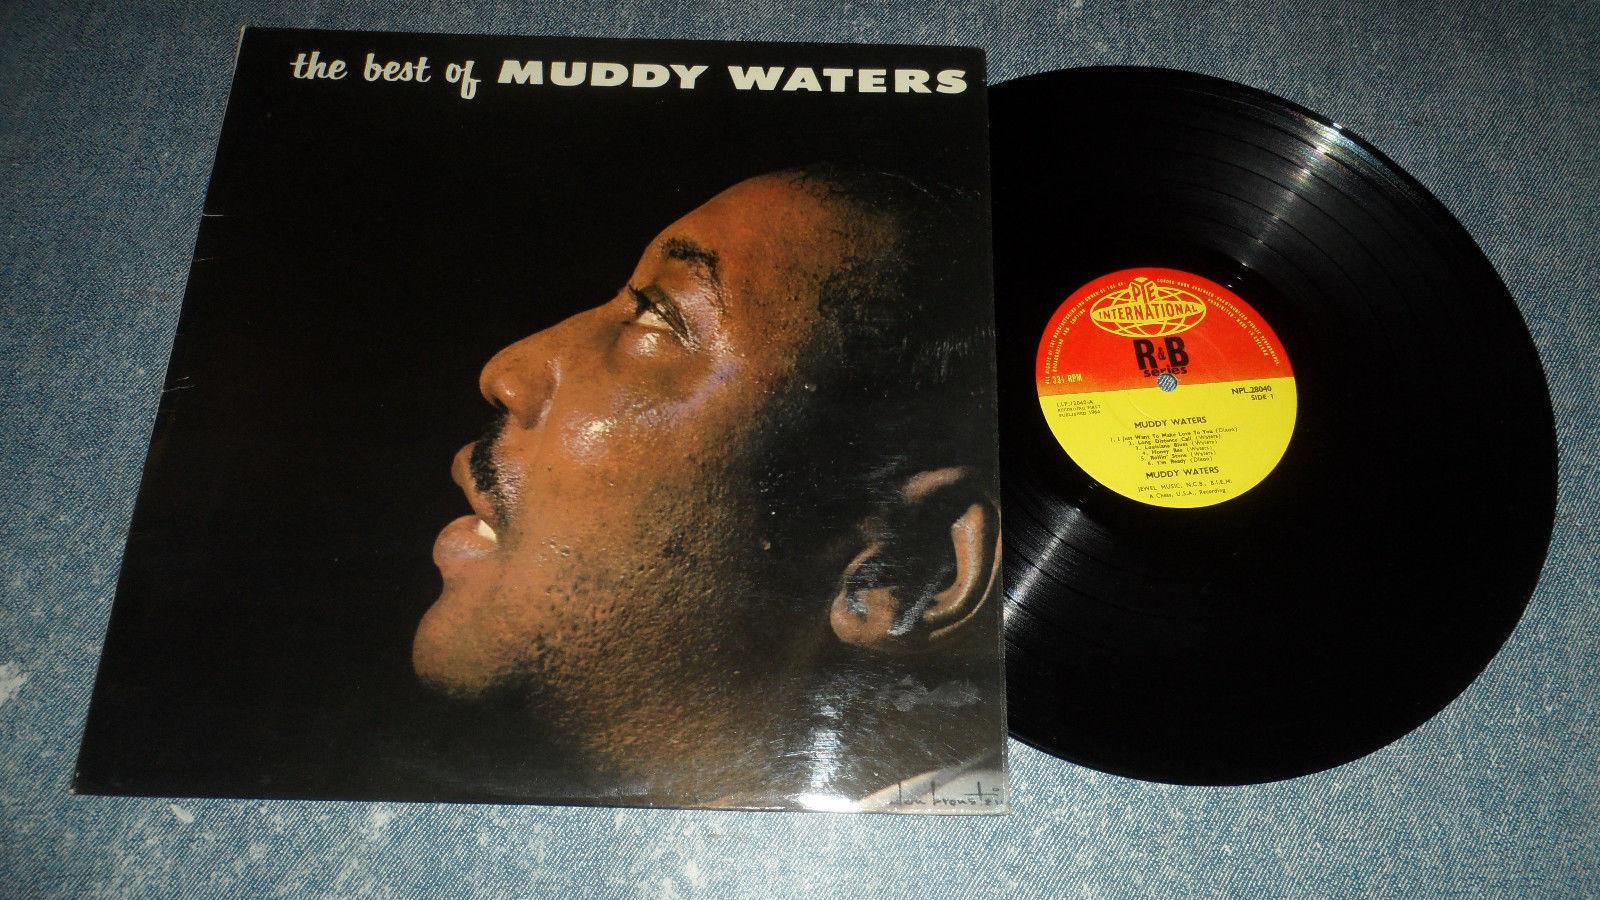 MUDDY WATERS 'THE BEST OF MUDDY WATERS' NPL 28040 PYE INT 1964 UK MONAURAL ISSUE